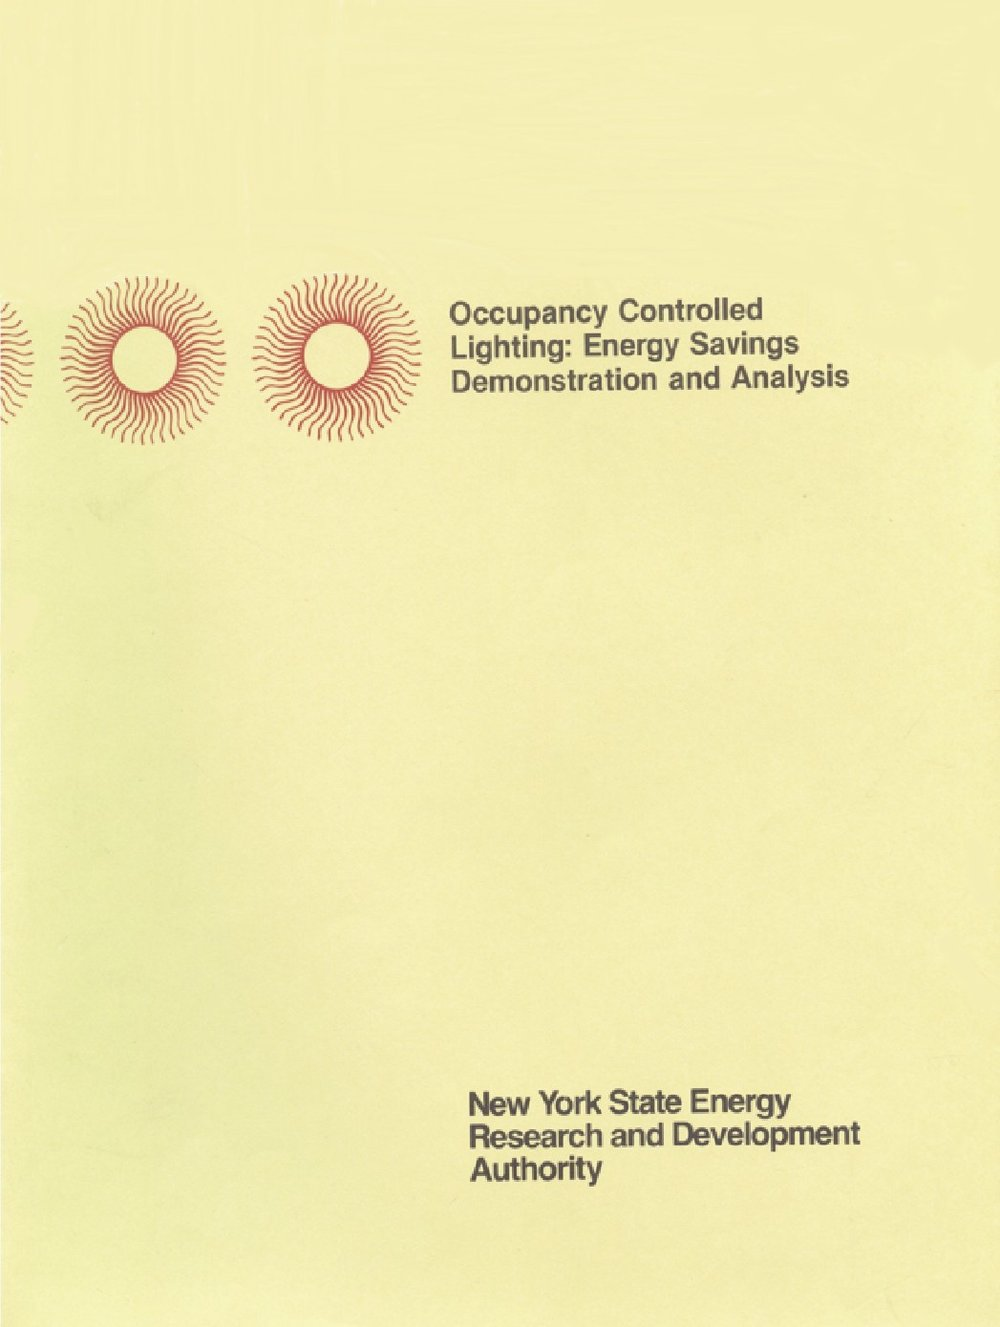 Occupant Controlled Lighting - Report Summary